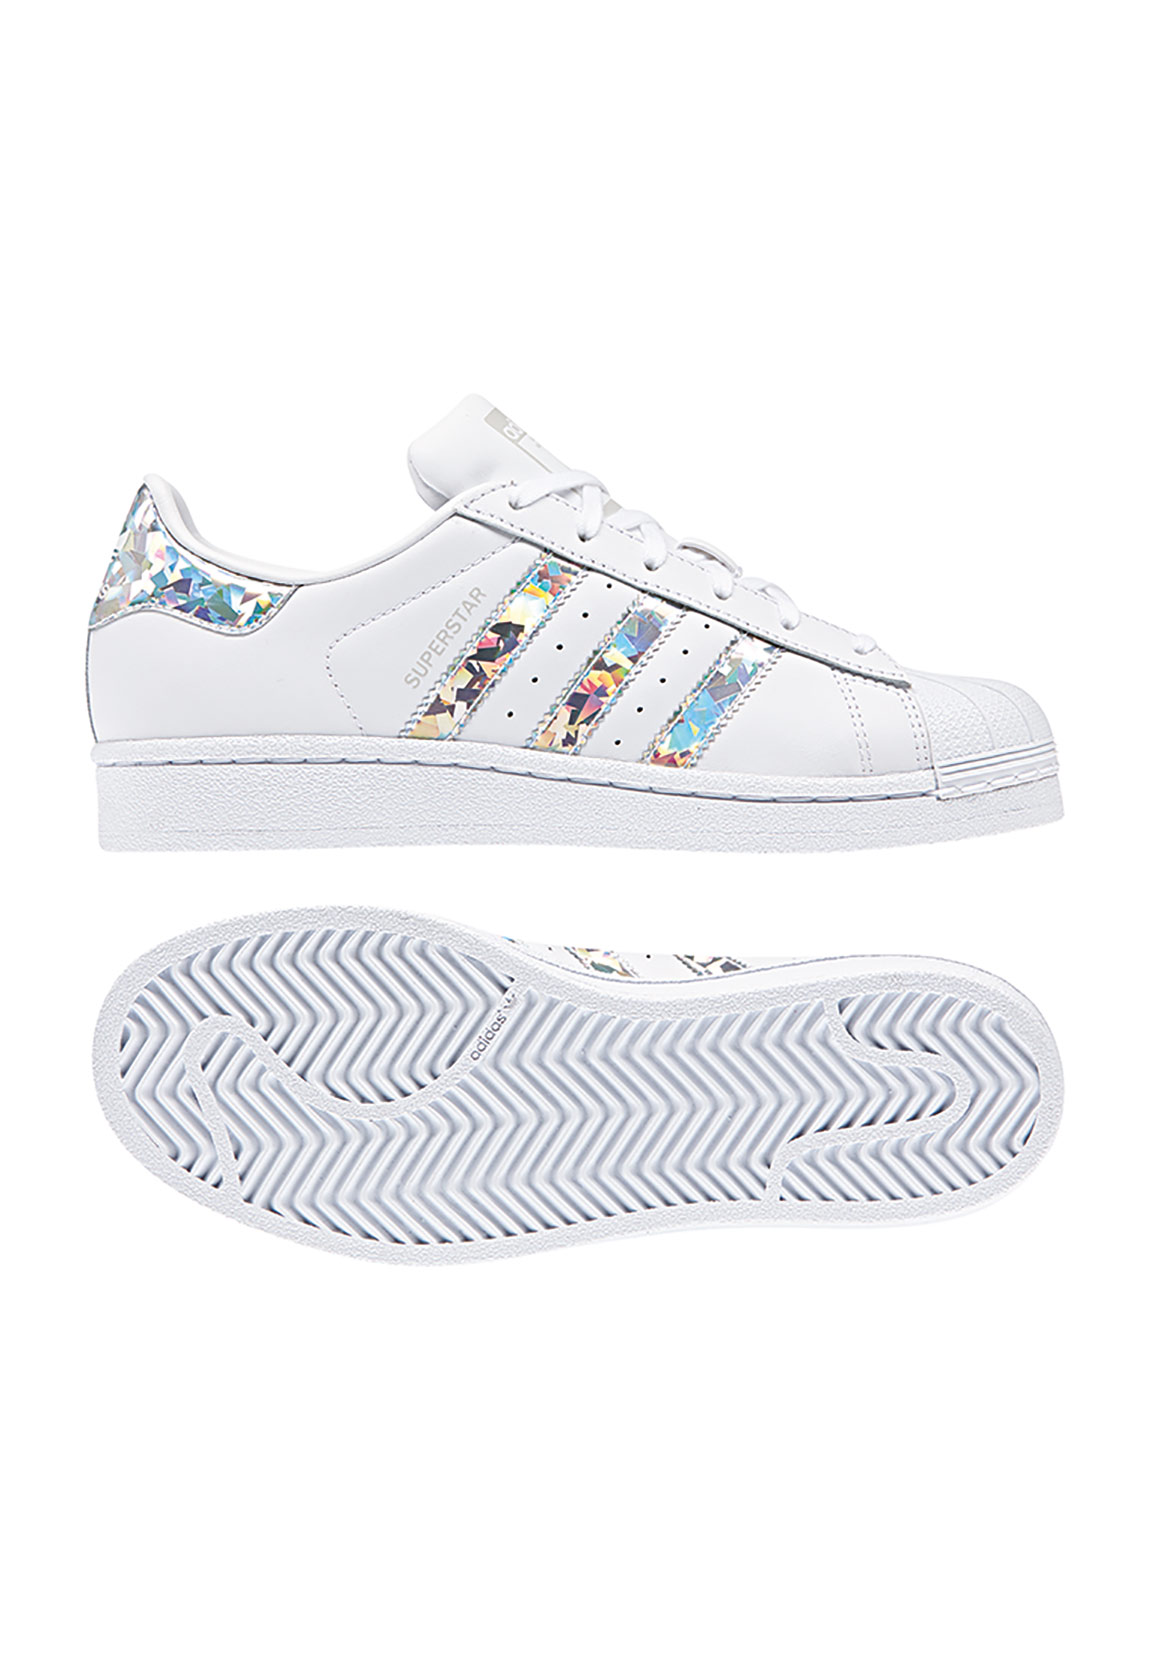 Adidas Originals Sneaker Damen SUPERSTAR F33889 Weiss Silber